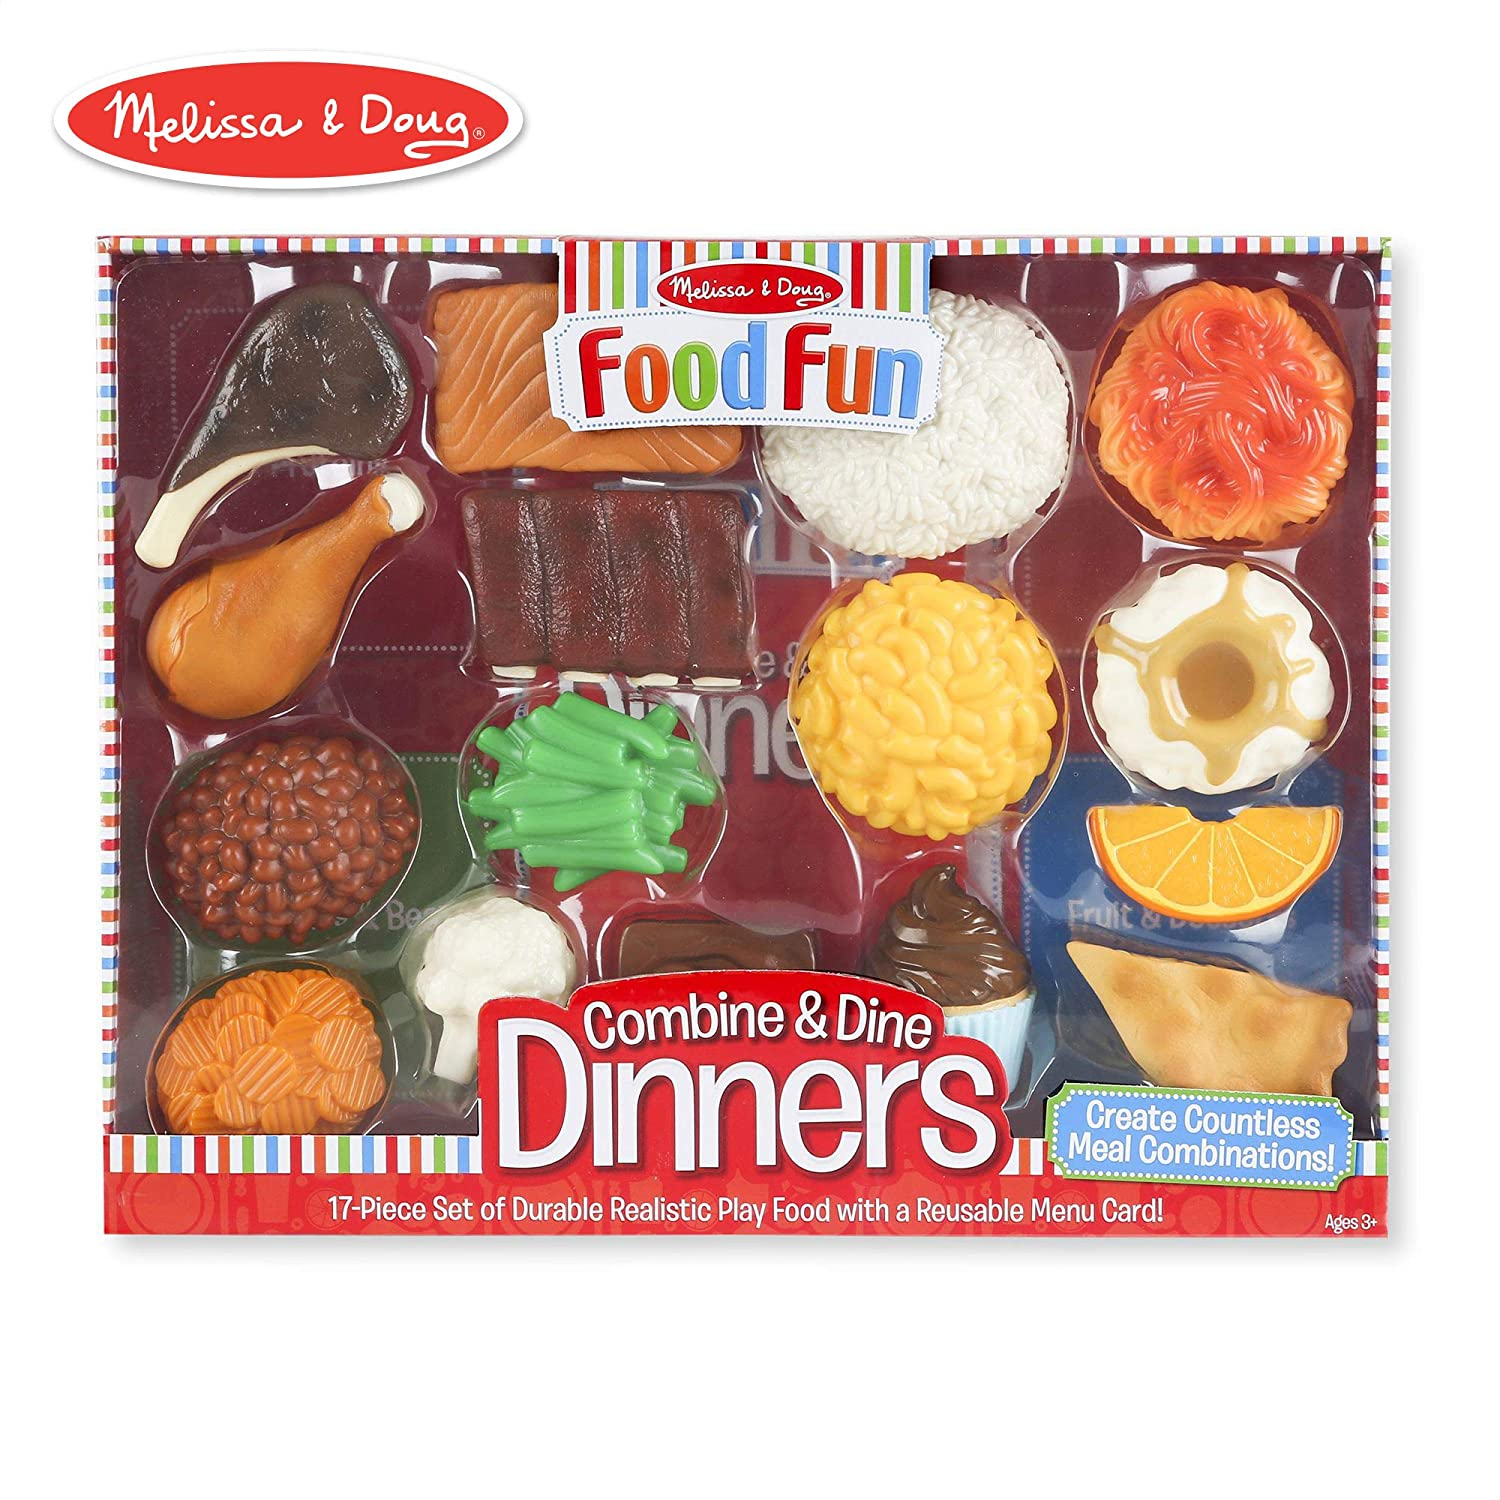 "Melissa & Doug Combine & Dine Dinners, Pretend Play, Durable, Realistic Food Pieces, Dishwasher-Safe, 17-Piece Set, 11.5"" H x 15.25"" W x 2.75"" L"